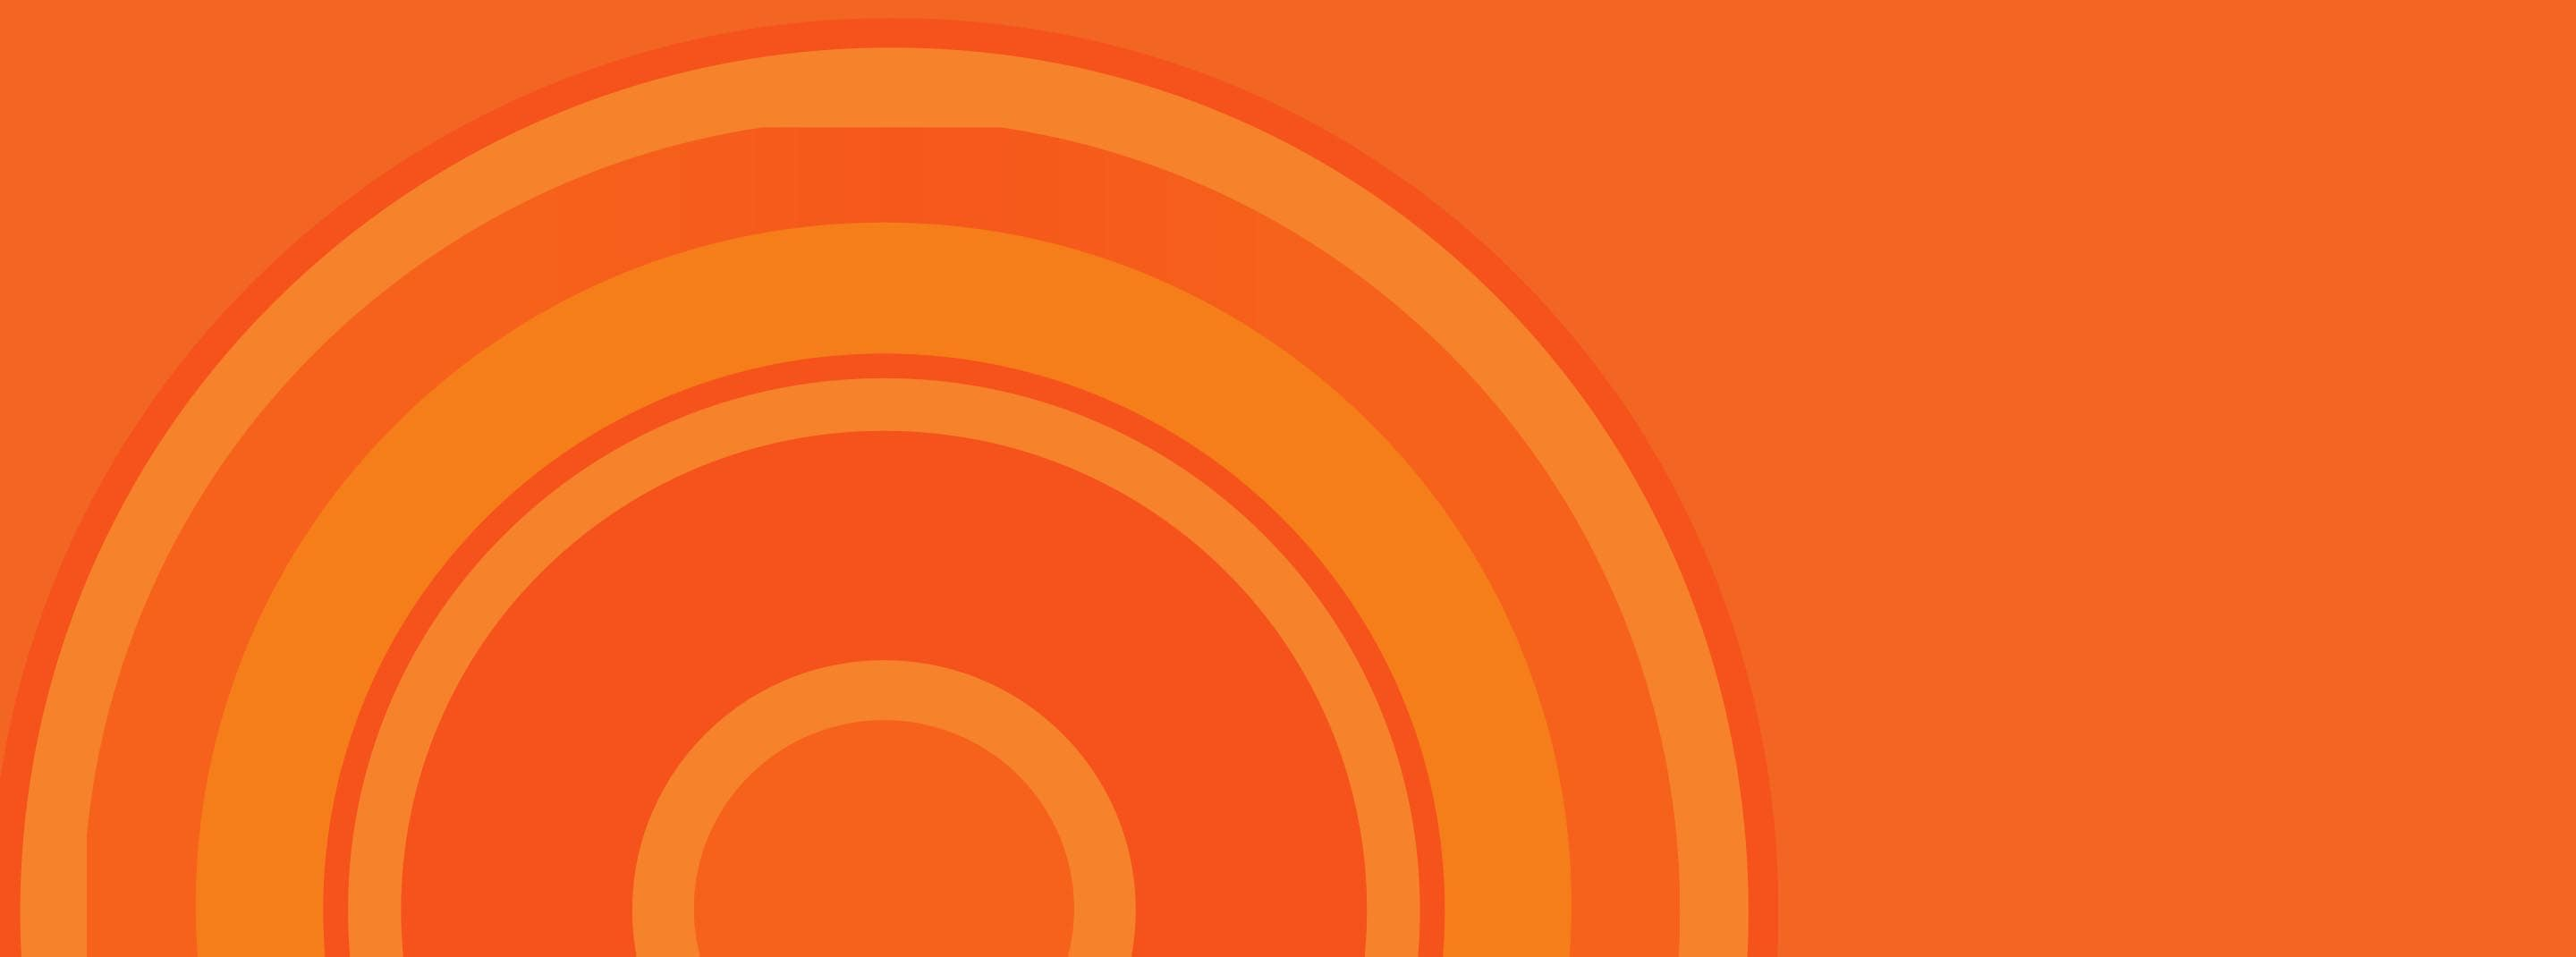 Orange circles on orange background